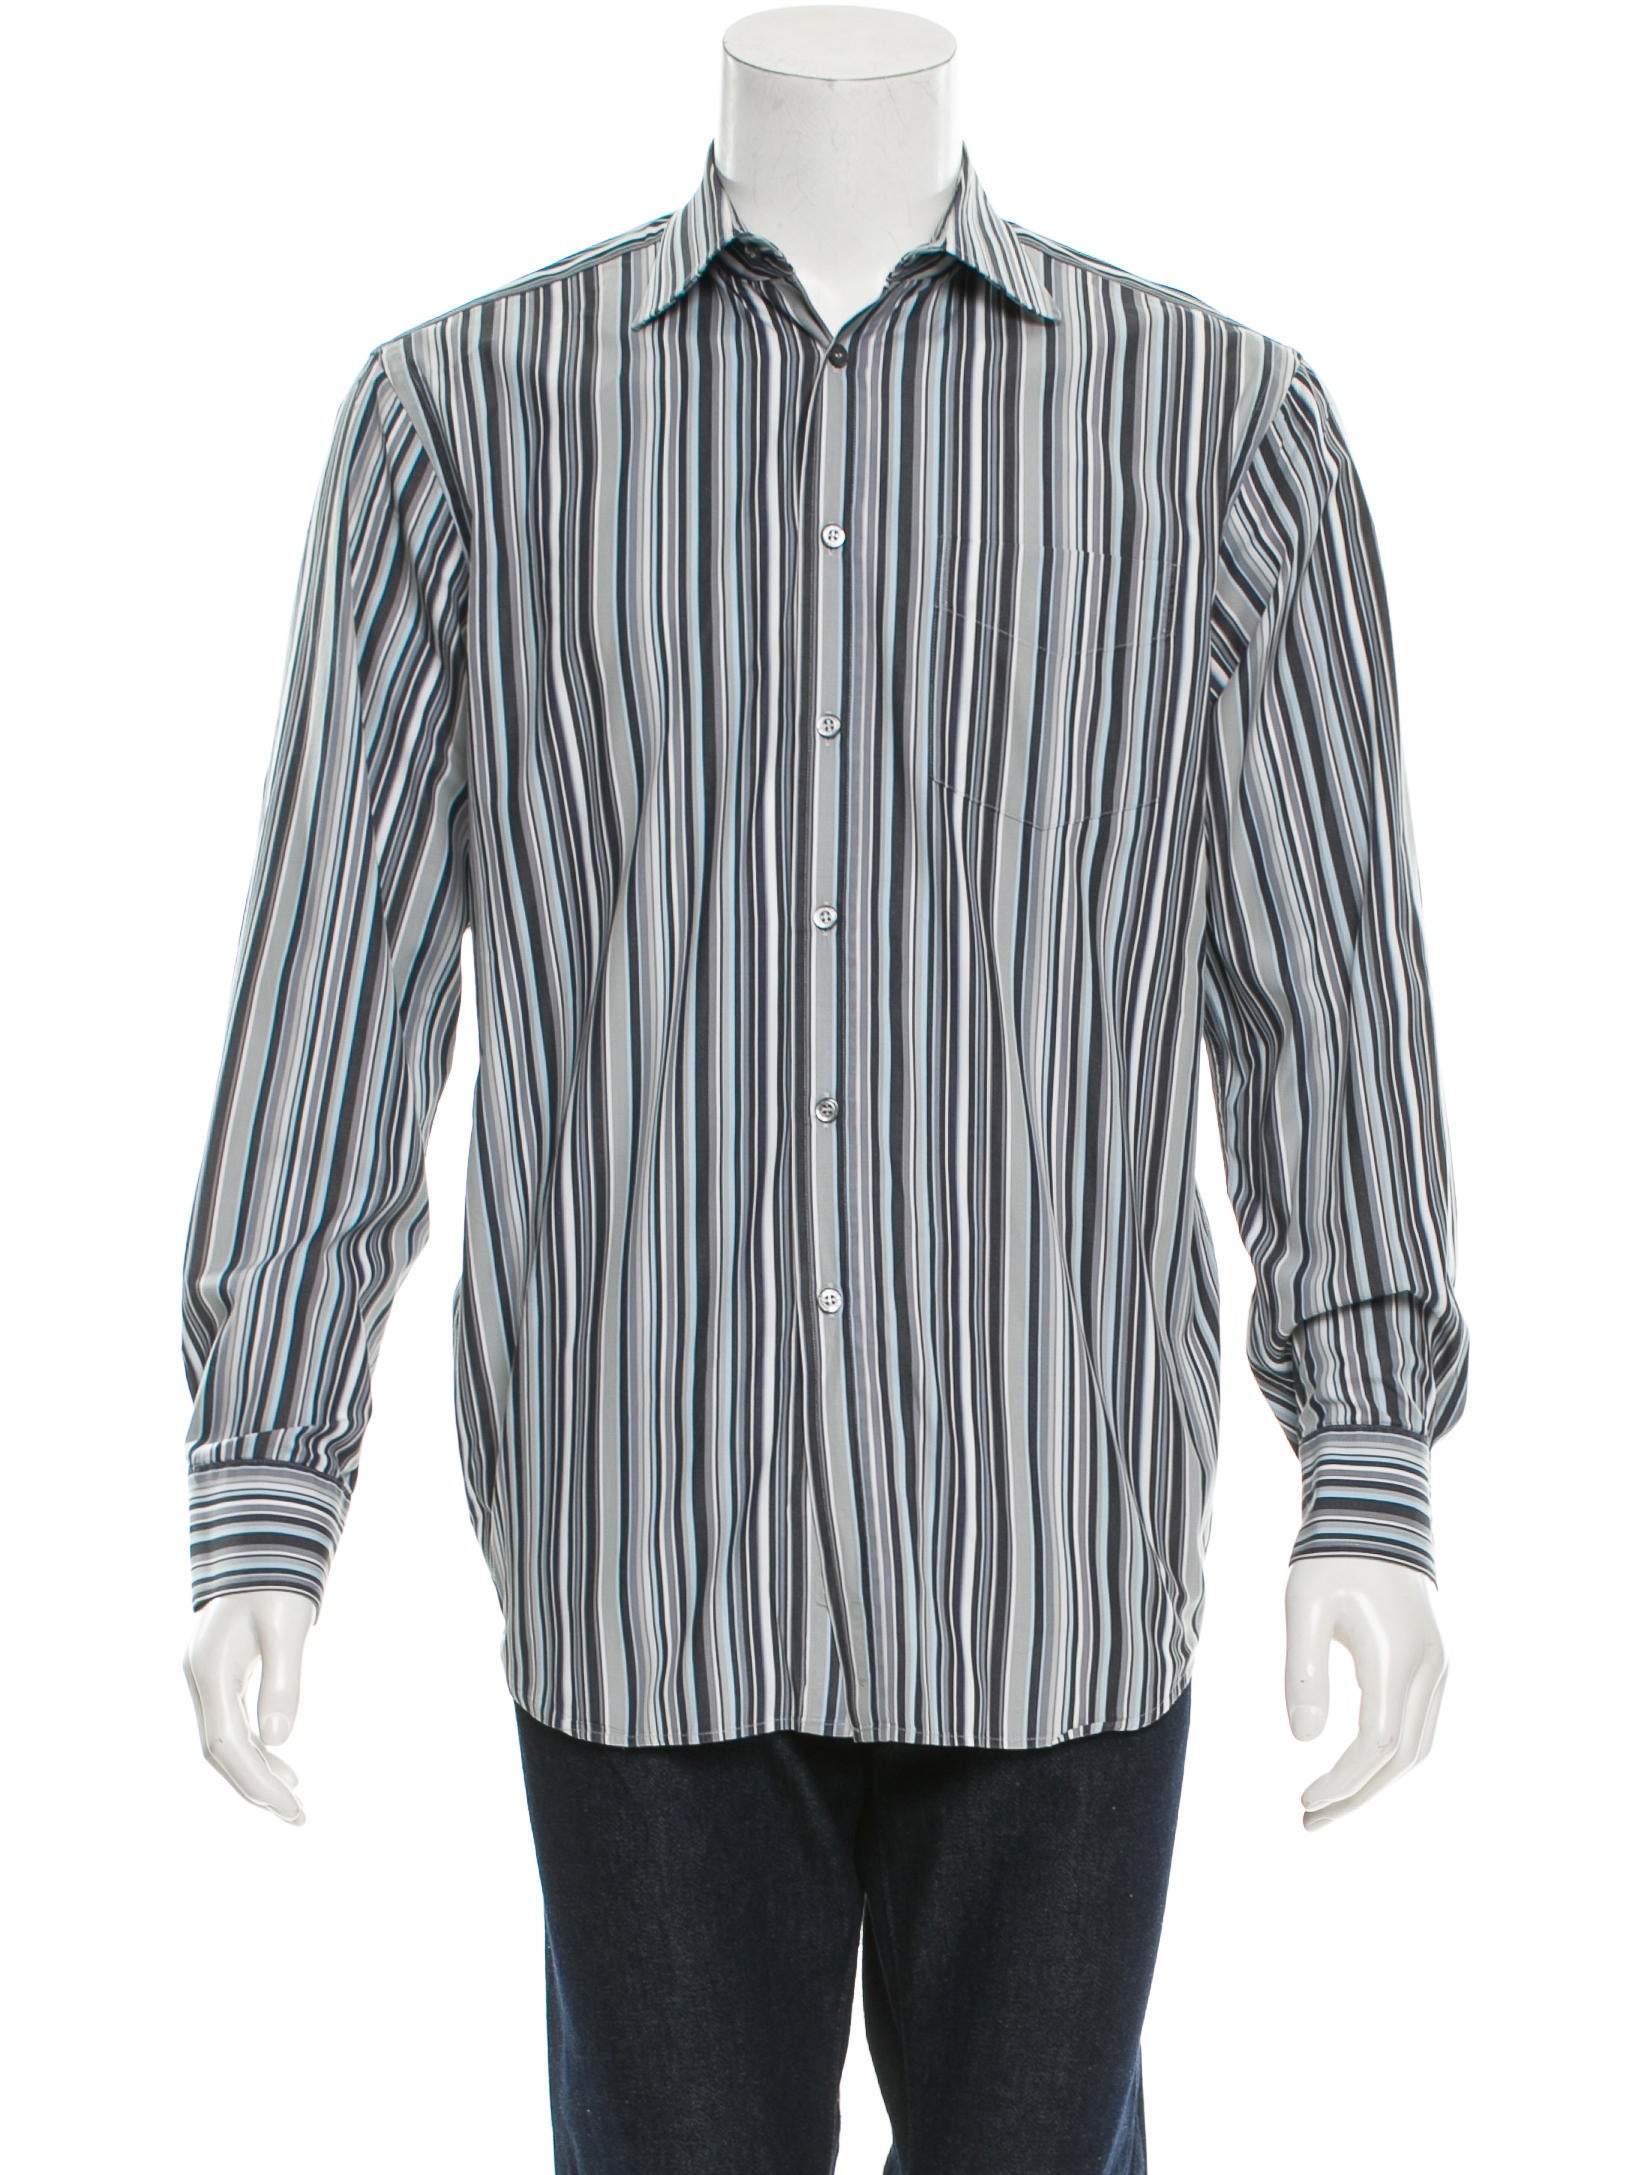 Paul smith striped button up shirt clothing wps21663 for Striped button up shirt mens